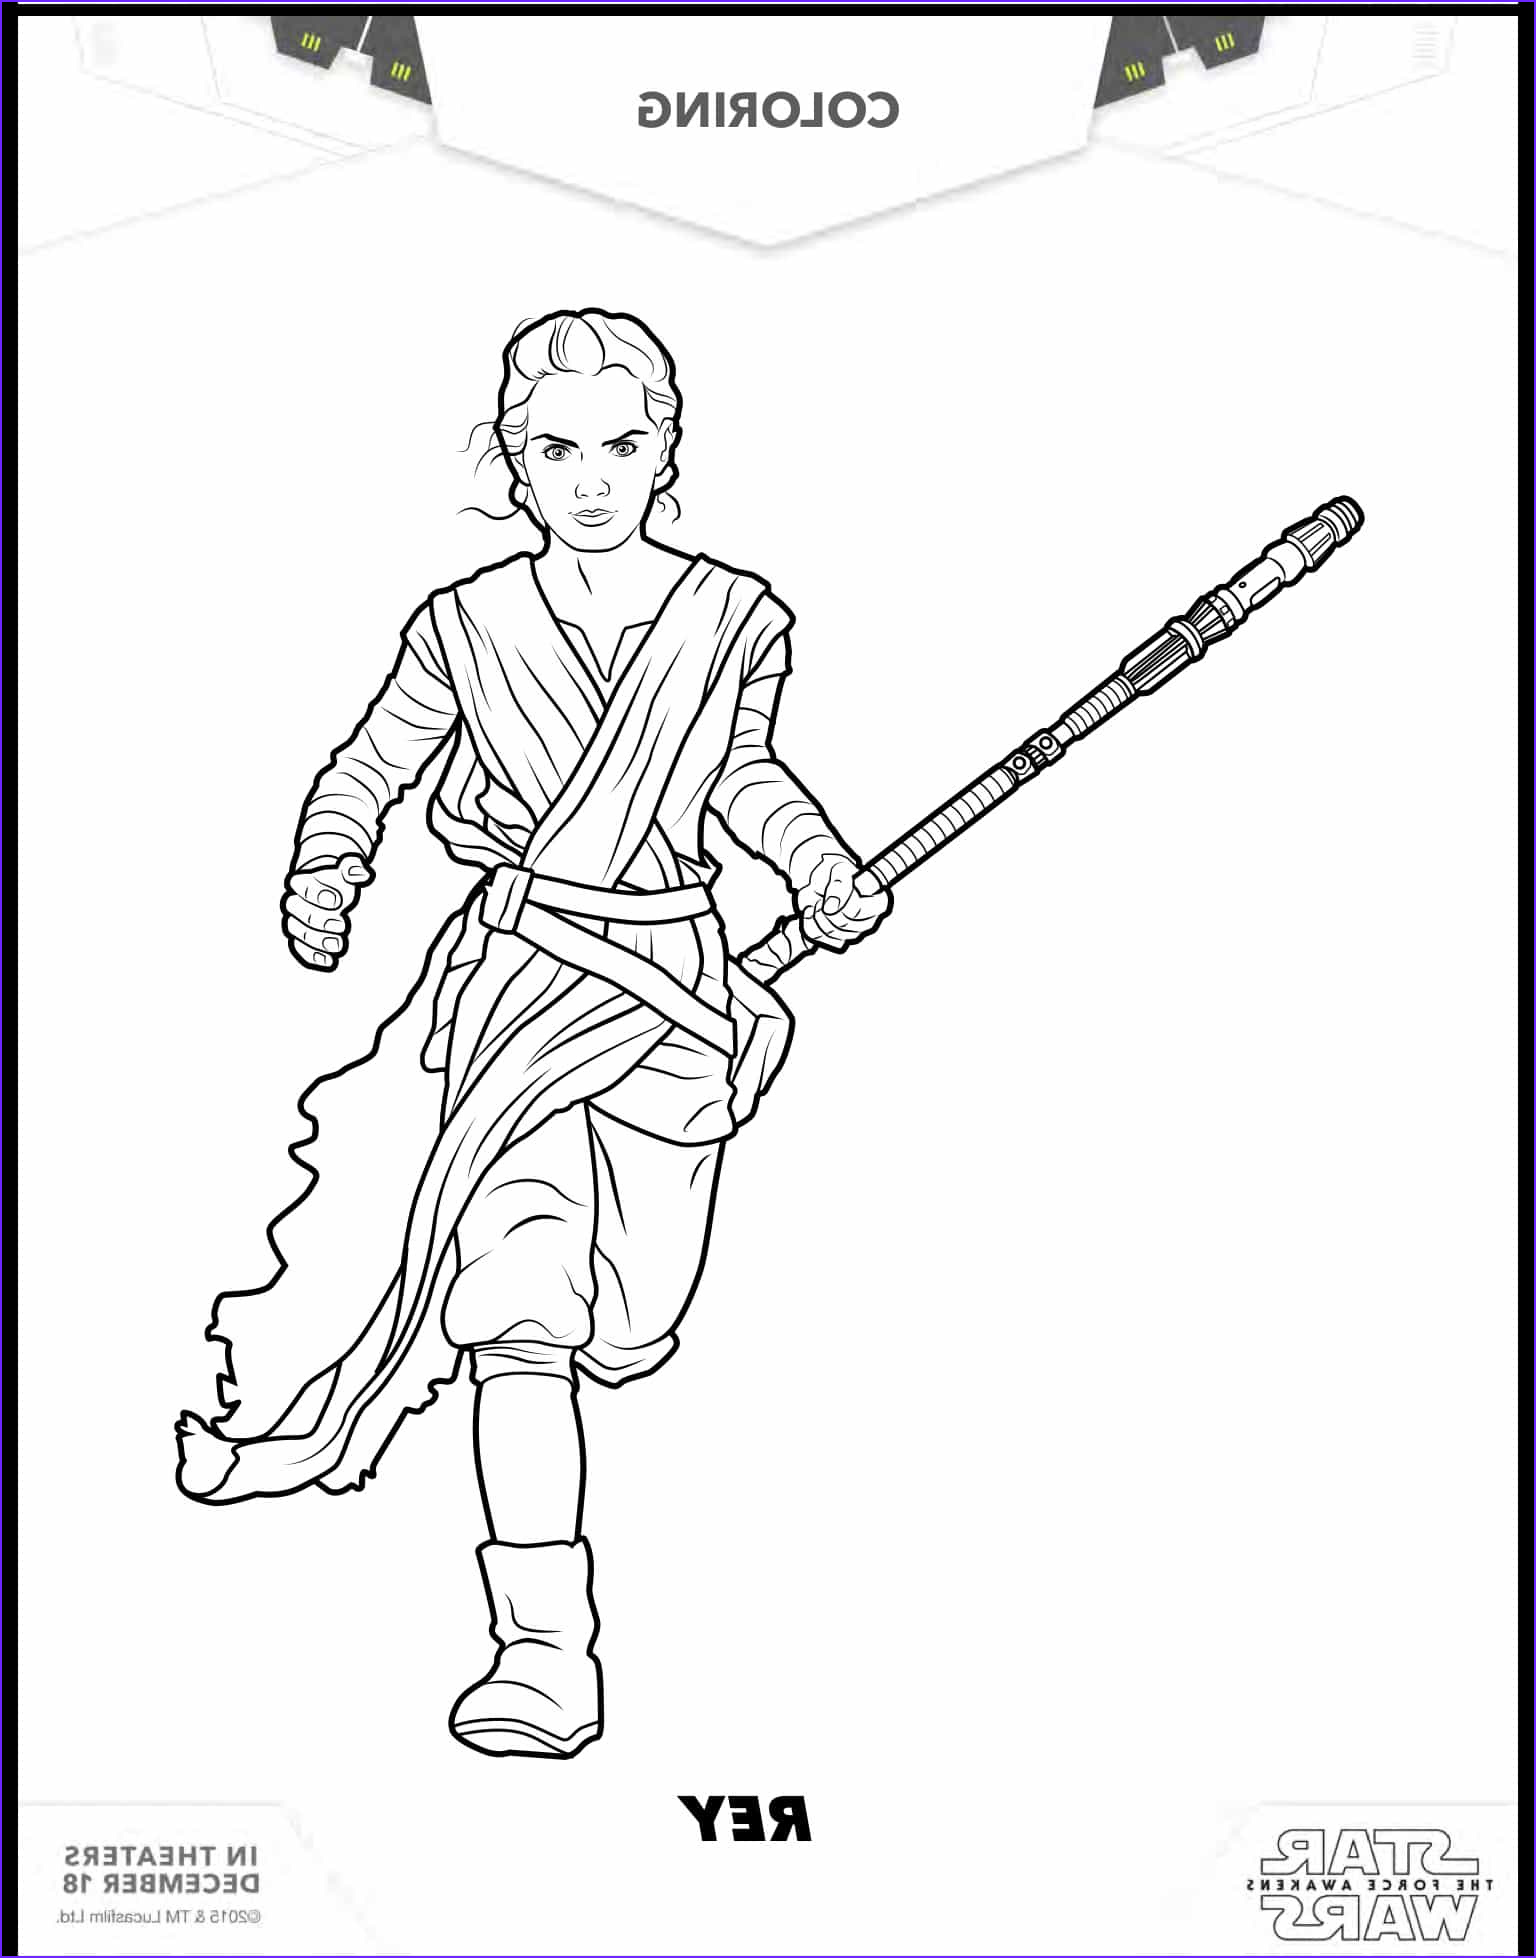 Star Wars Coloring Pages Best Of Image 8 Free Star Wars the force Awakens Coloring Sheets